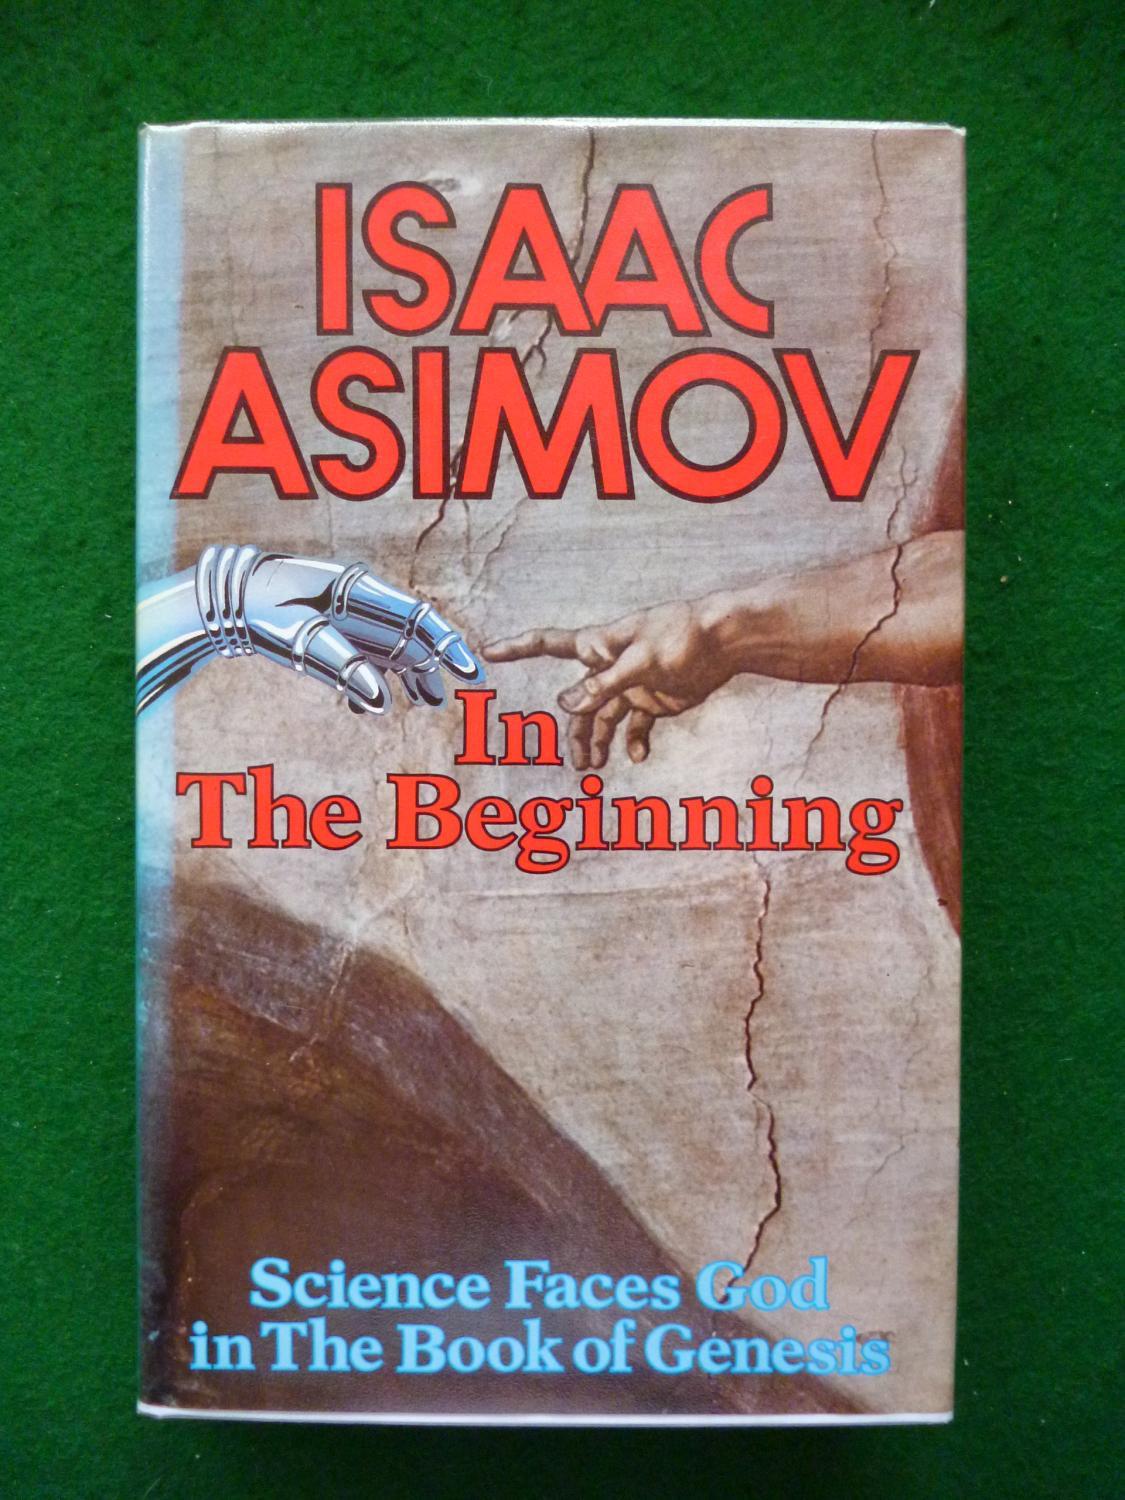 In the Beginning: Science Faces God in the Book of Genesis